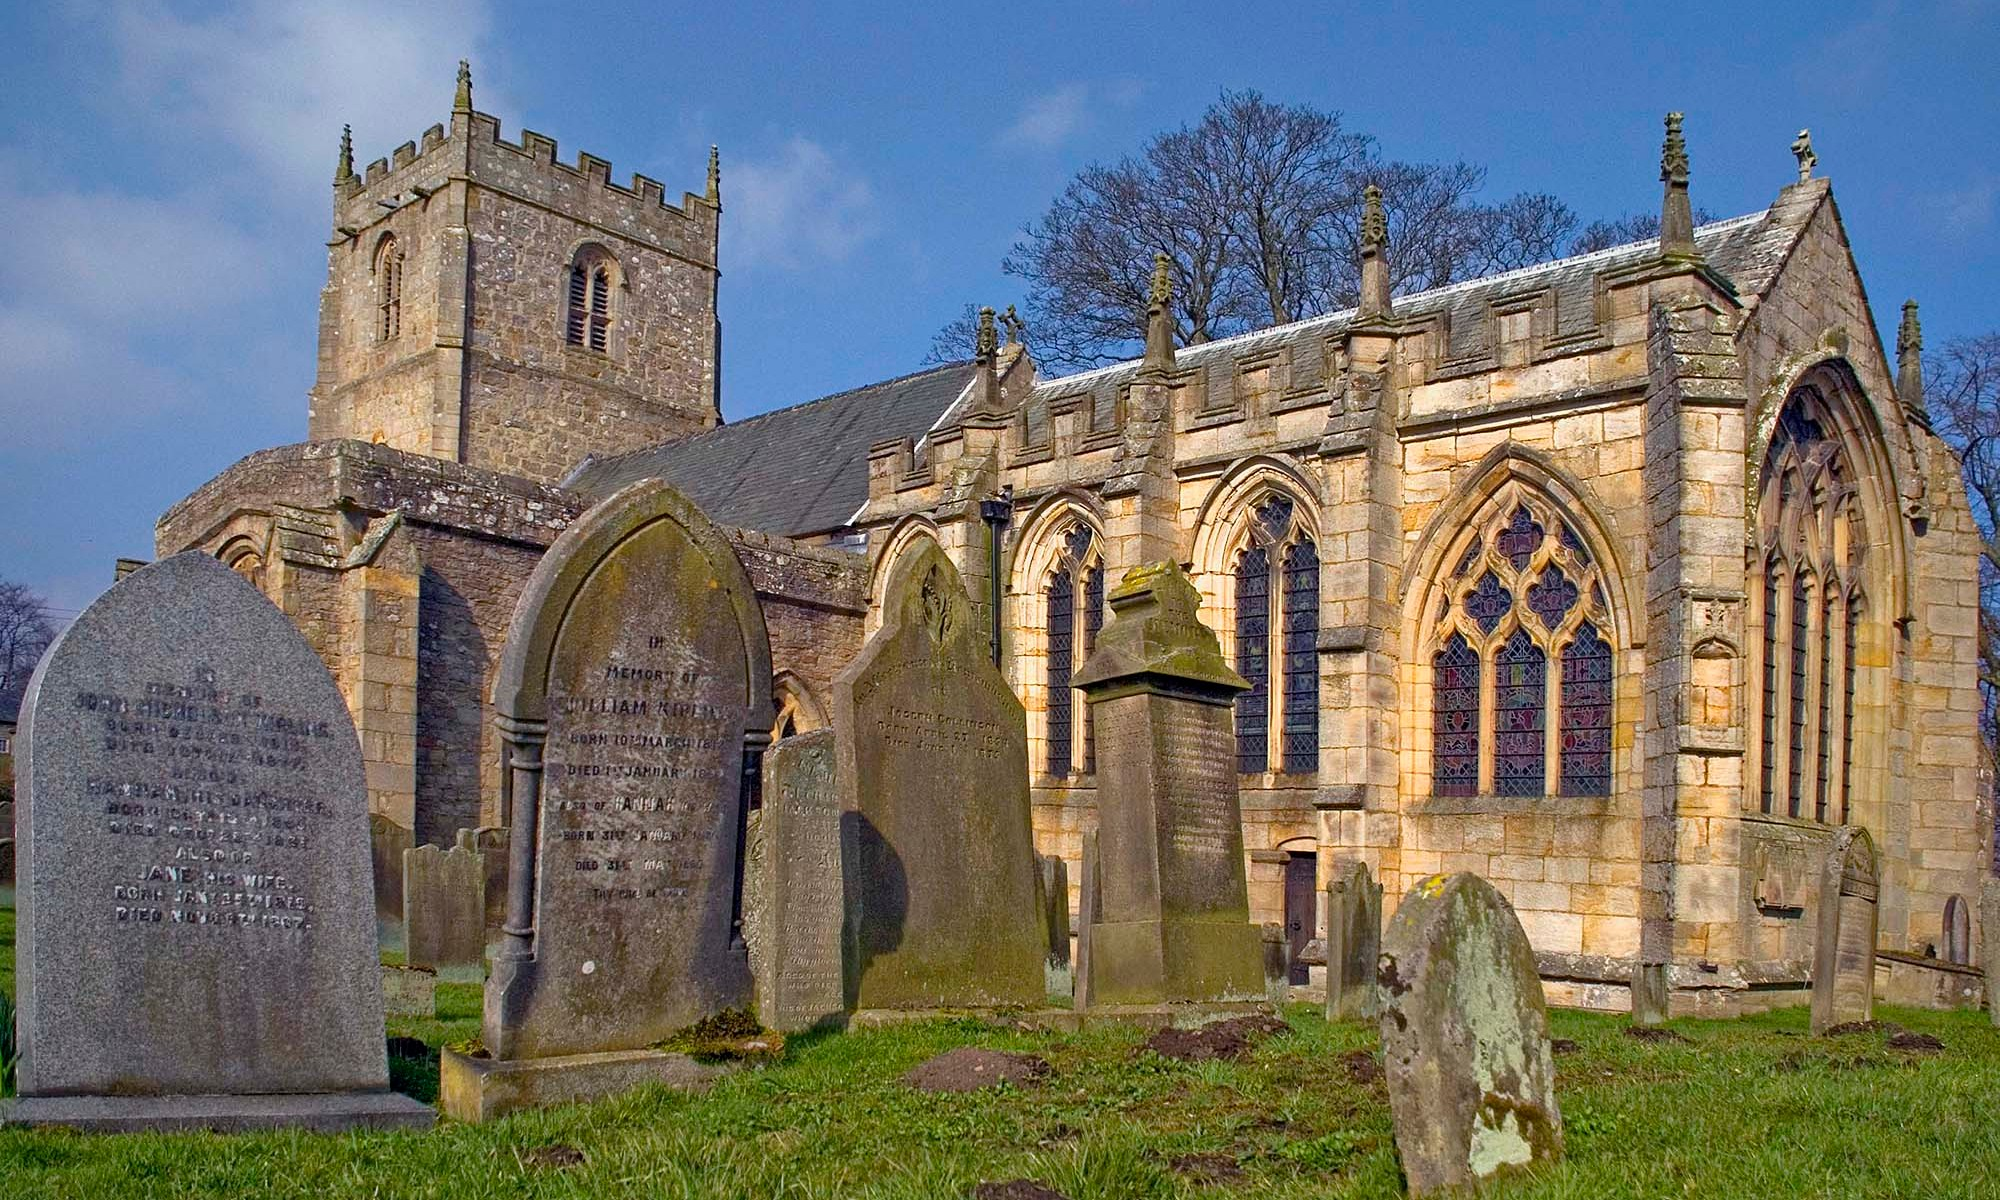 Romaldkirk Parish Church, Teesdale